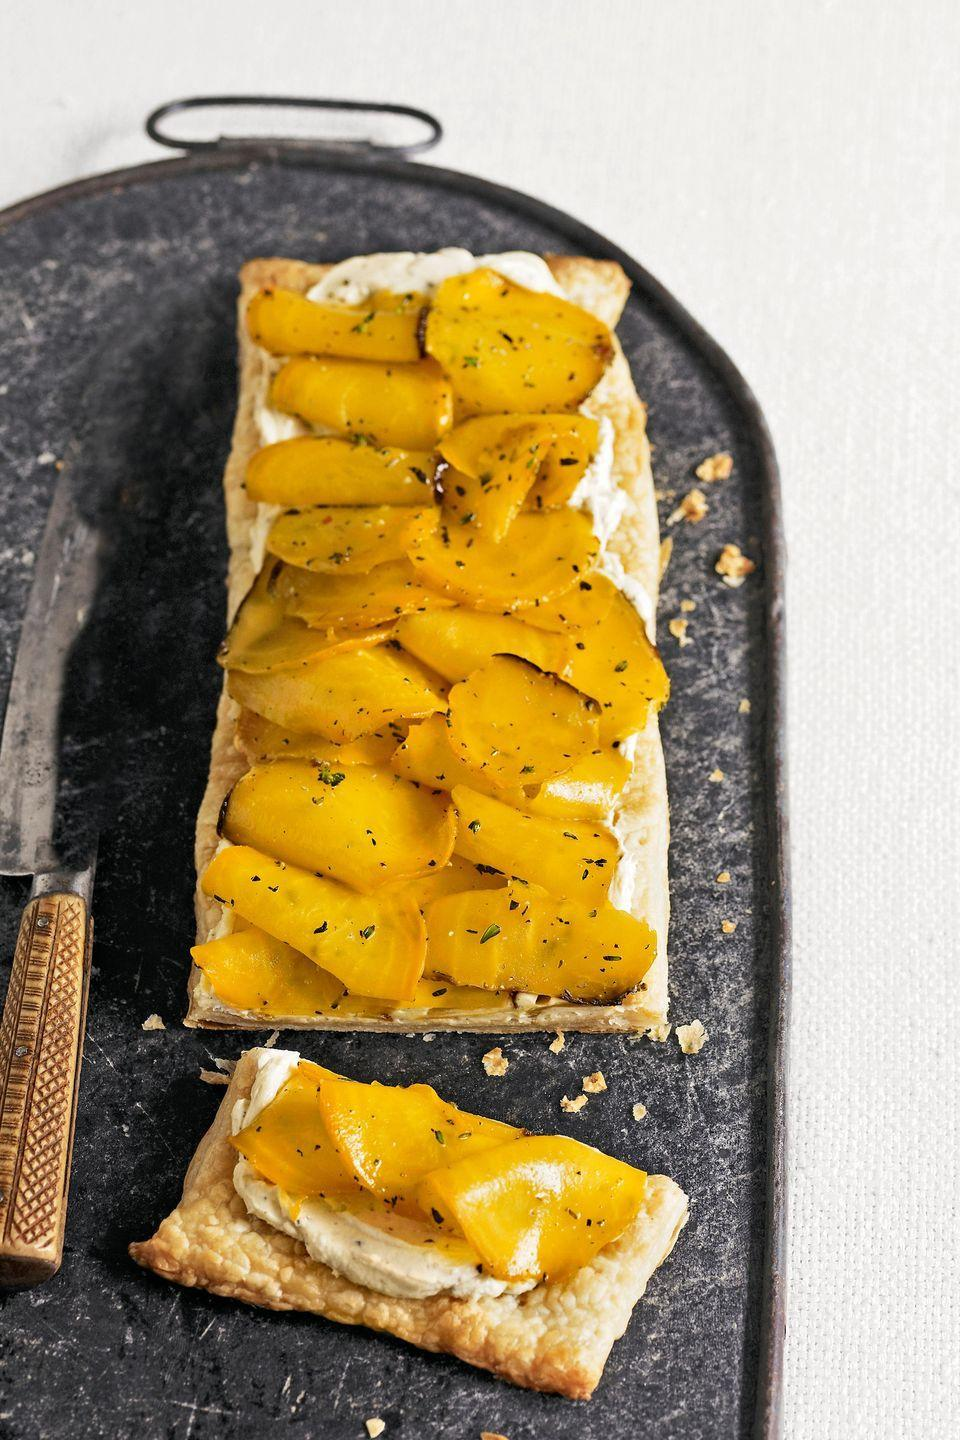 "<p>This delicious tart can be served as both a side dish and savory dessert. </p><p><strong><a href=""https://www.countryliving.com/food-drinks/recipes/a5496/golden-beet-tart-recipe/"" rel=""nofollow noopener"" target=""_blank"" data-ylk=""slk:Get the recipe"" class=""link rapid-noclick-resp"">Get the recipe</a>.</strong></p><p><a class=""link rapid-noclick-resp"" href=""https://www.amazon.com/Nordic-Ware-Natural-Aluminum-Commercial/dp/B0049C2S32/?tag=syn-yahoo-20&ascsubtag=%5Bartid%7C10063.g.35089489%5Bsrc%7Cyahoo-us"" rel=""nofollow noopener"" target=""_blank"" data-ylk=""slk:SHOP BAKING SHEETS"">SHOP BAKING SHEETS</a></p>"